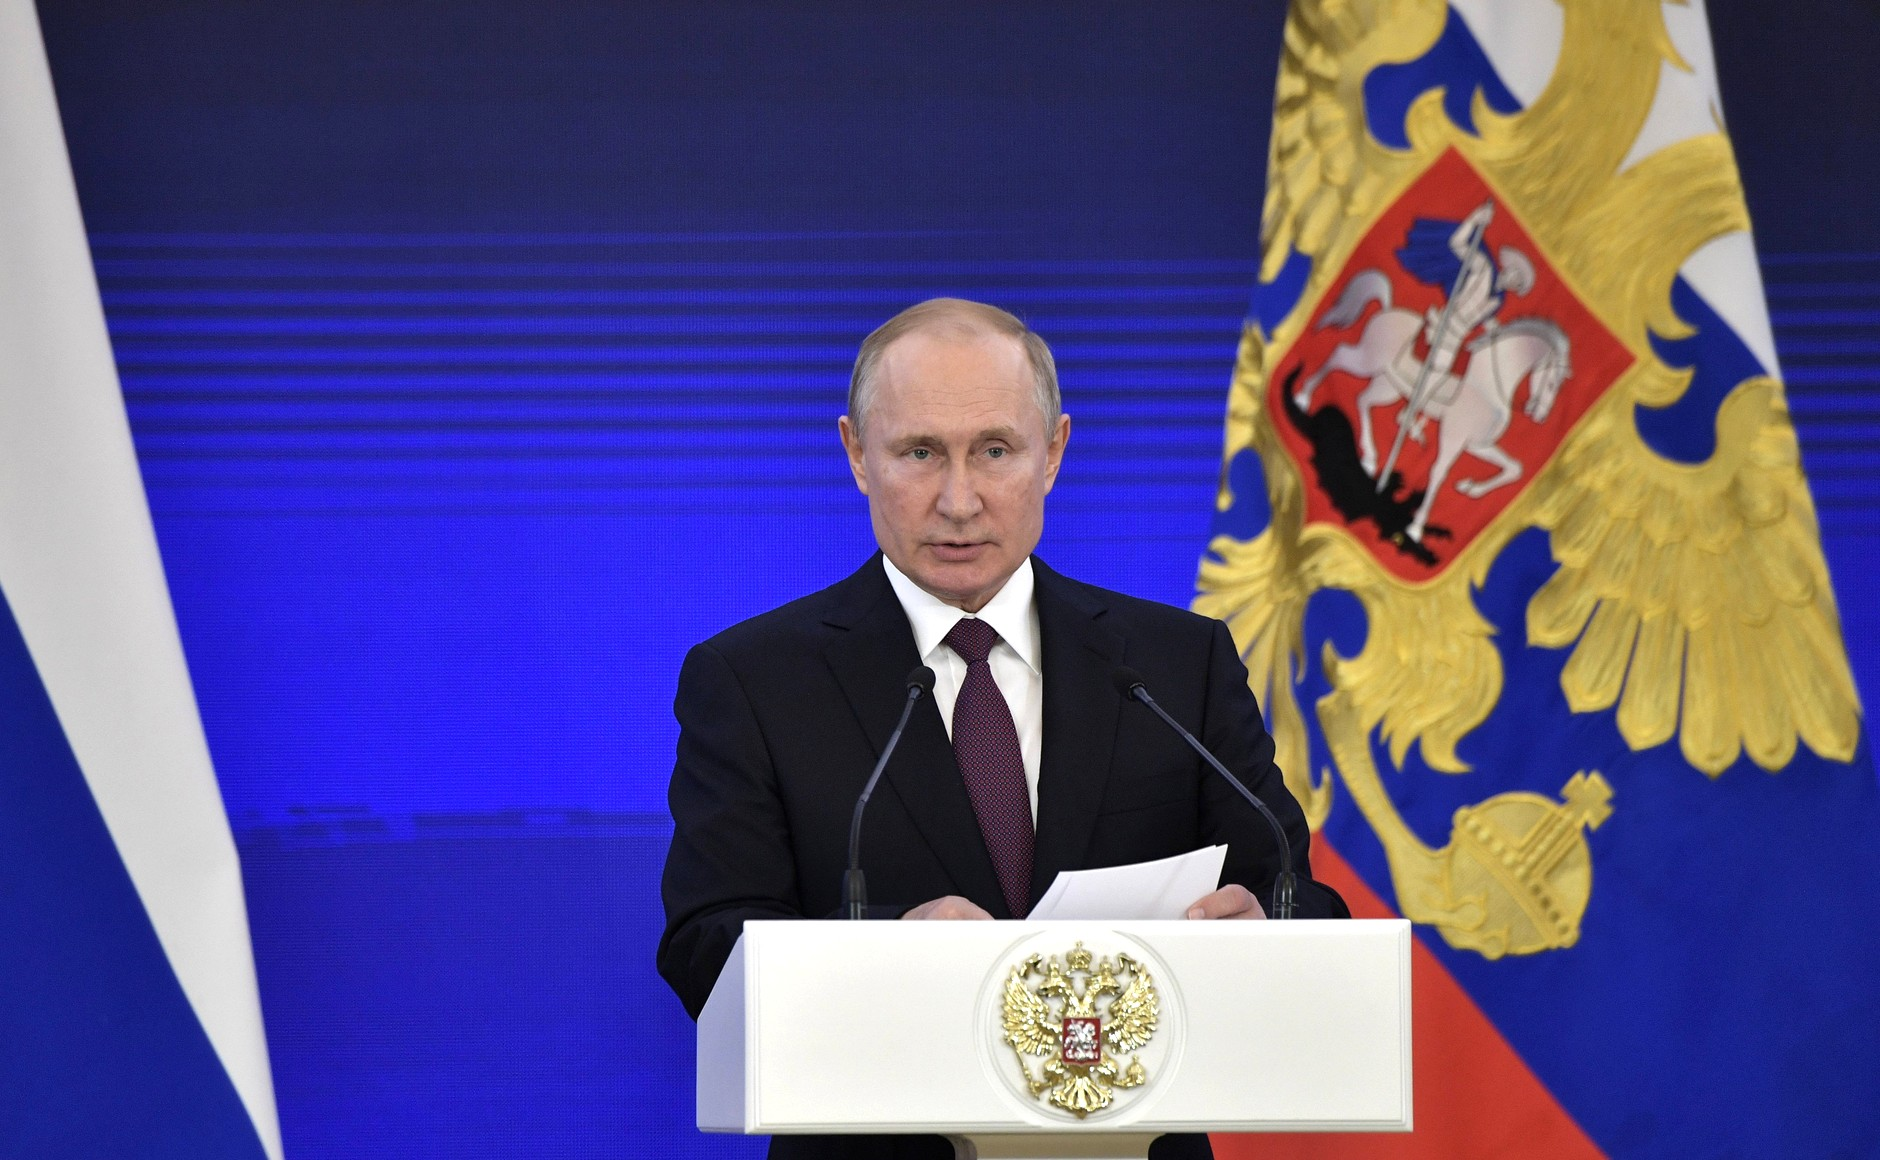 Vladimir Putin, President of the Russian Federation (credits: kremlin.ru)